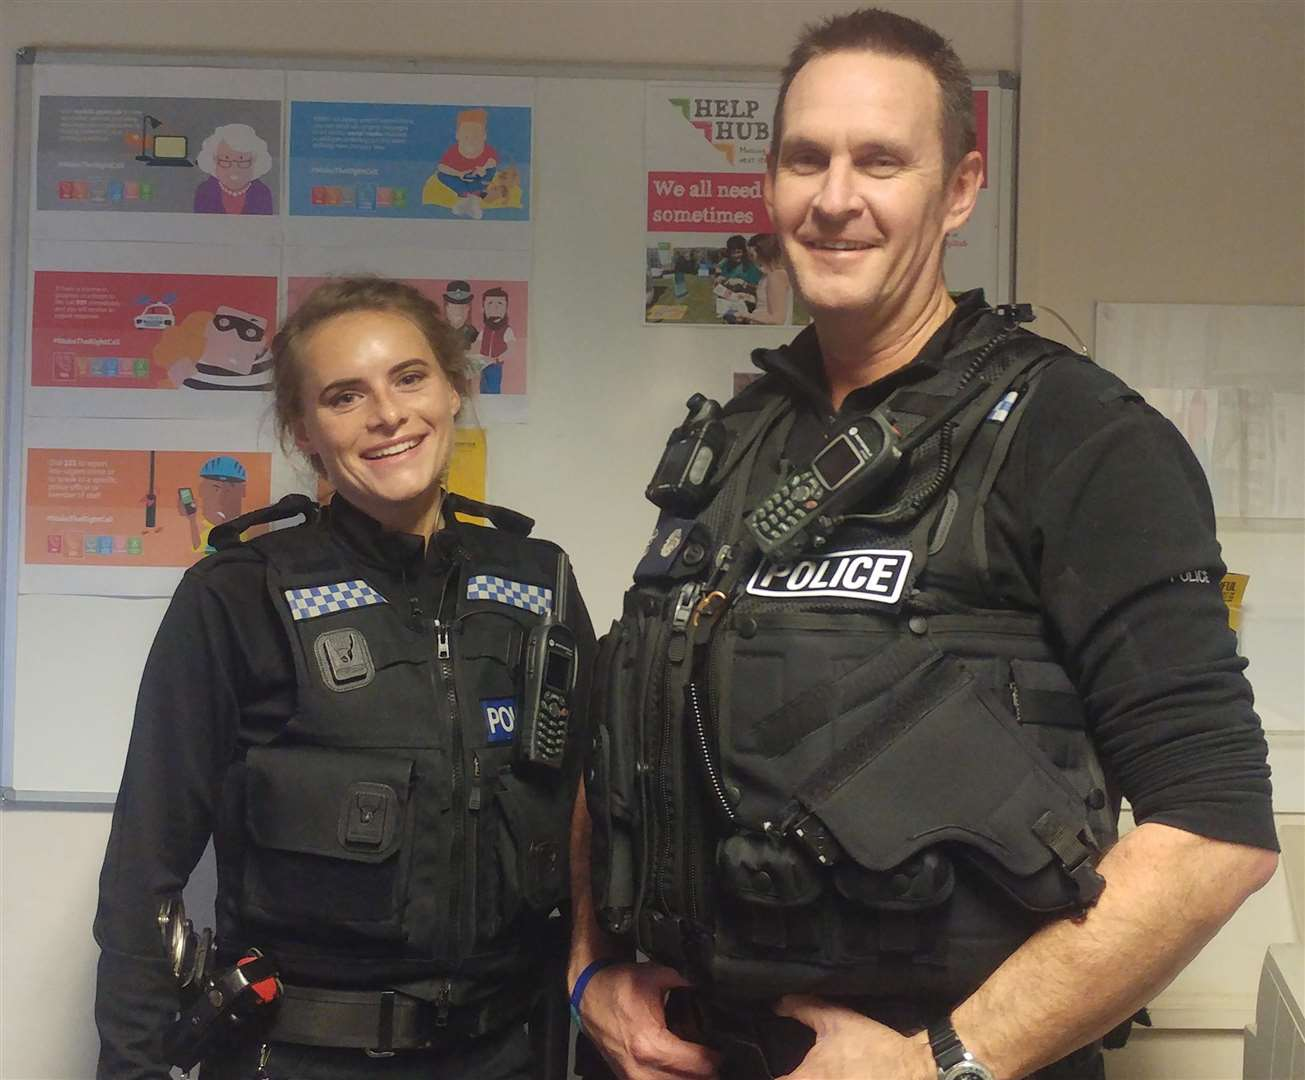 Diss Express reporter joined Pc Sarah Griffiths and Pc Trevor McLoughlin on a night shift.